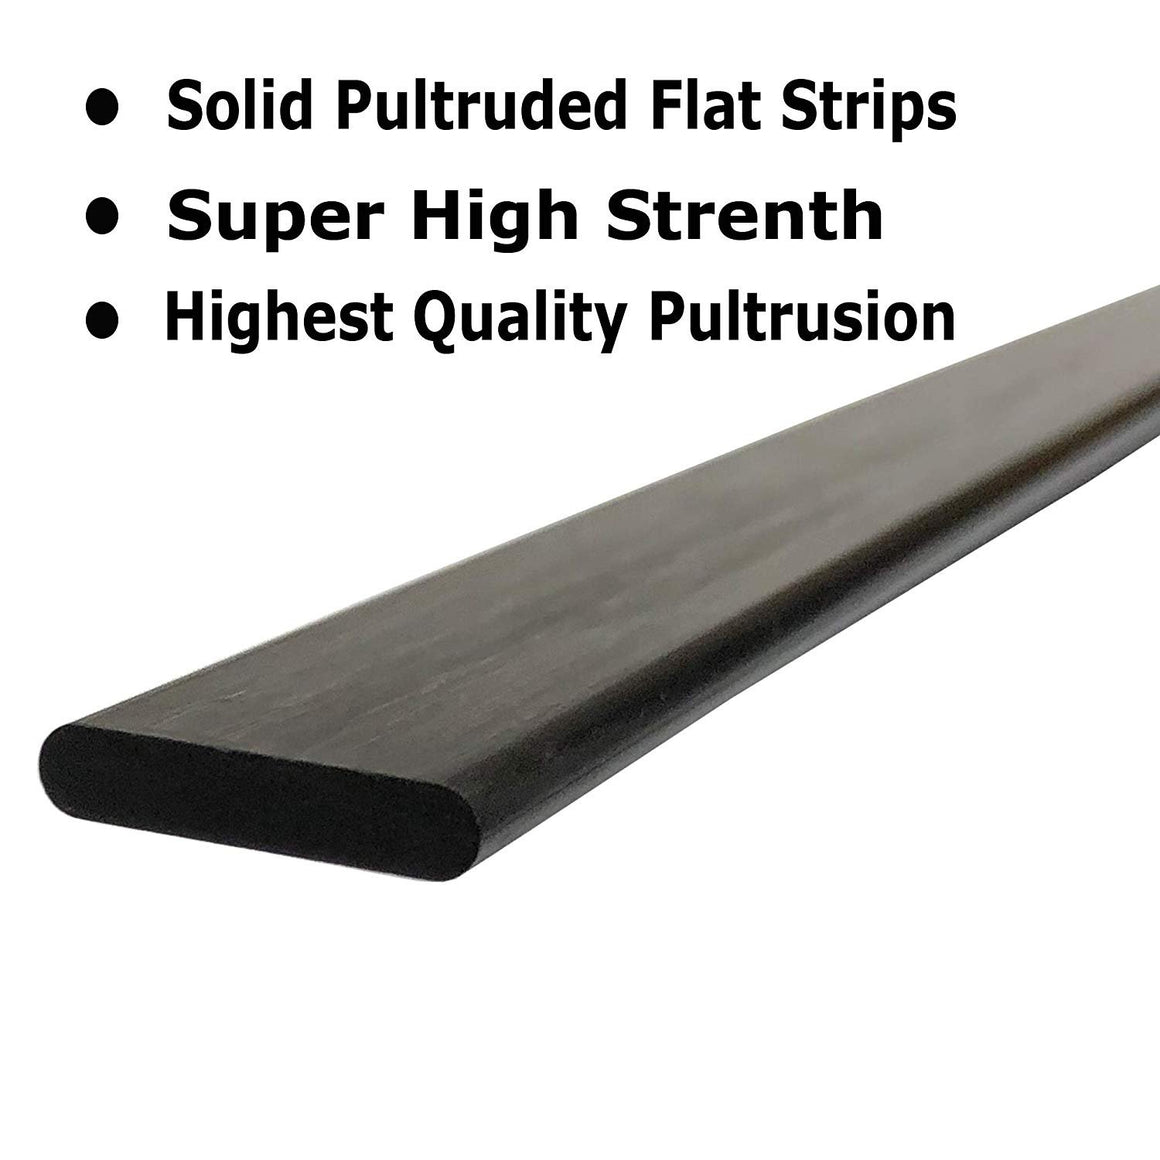 (1) 1mm x 10mm 1000mm - PULTRUDED-Flat Carbon Fiber Bar. 100% Pultruded high Strength Carbon Fiber. Used for Drones, Radio Controlled Vehicles. Projects requiring high Strength Components